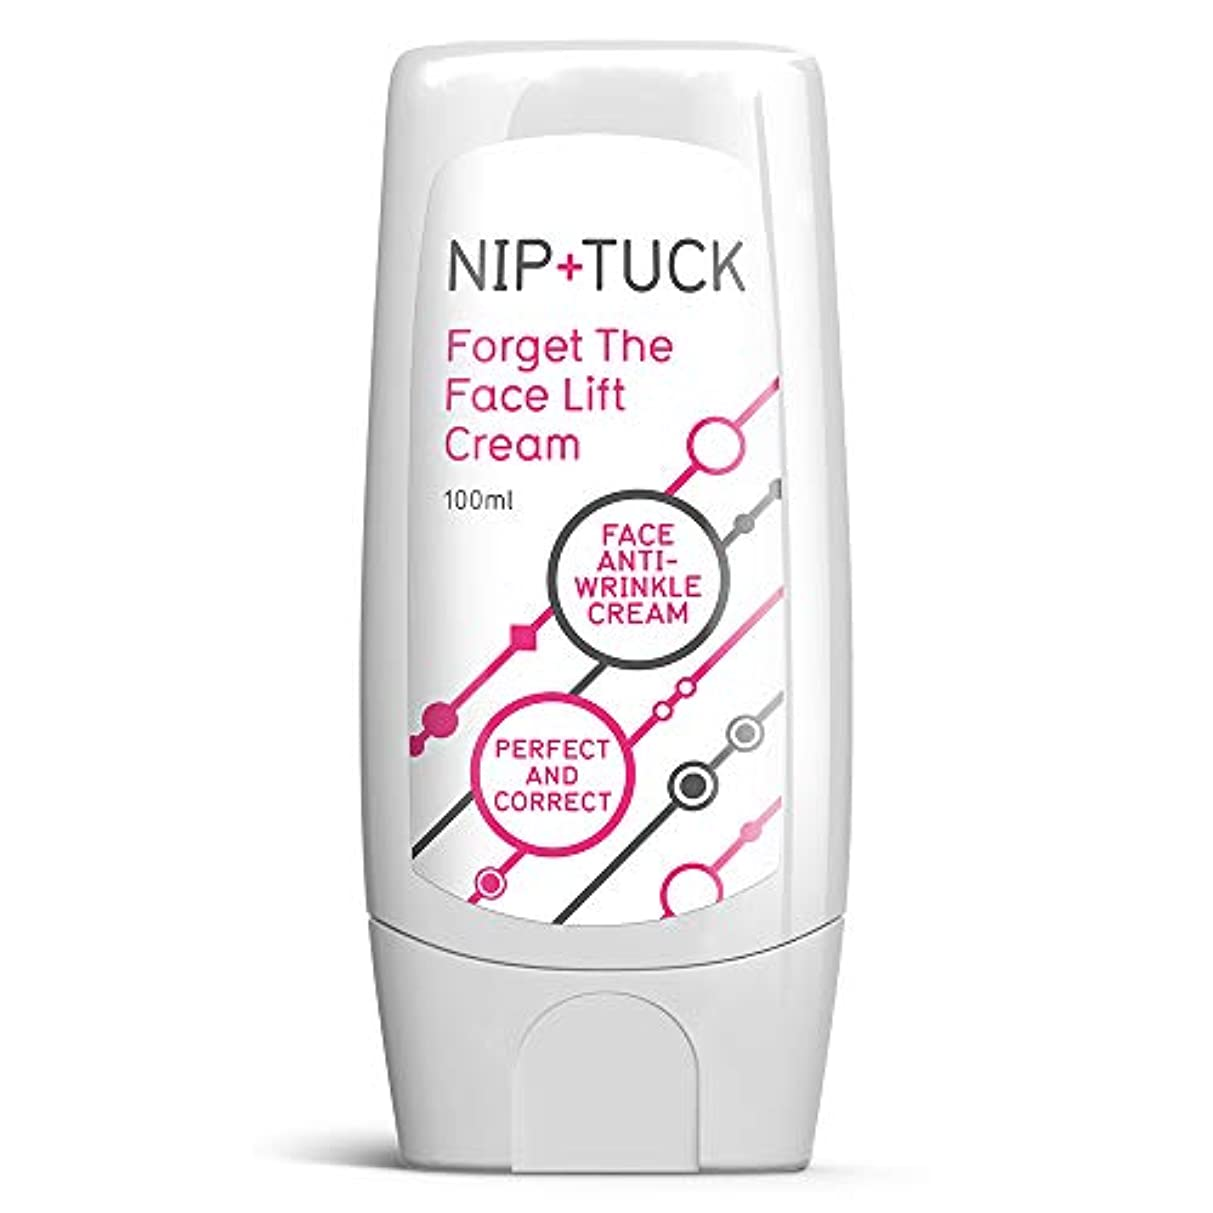 告白する同等のイルNIP & TUCK FORGET THE FACELIFT CREAM Nippu& takku wa, anchikurinkufeisu& anchirinkurukurīmufāmu& 若く見える肌を